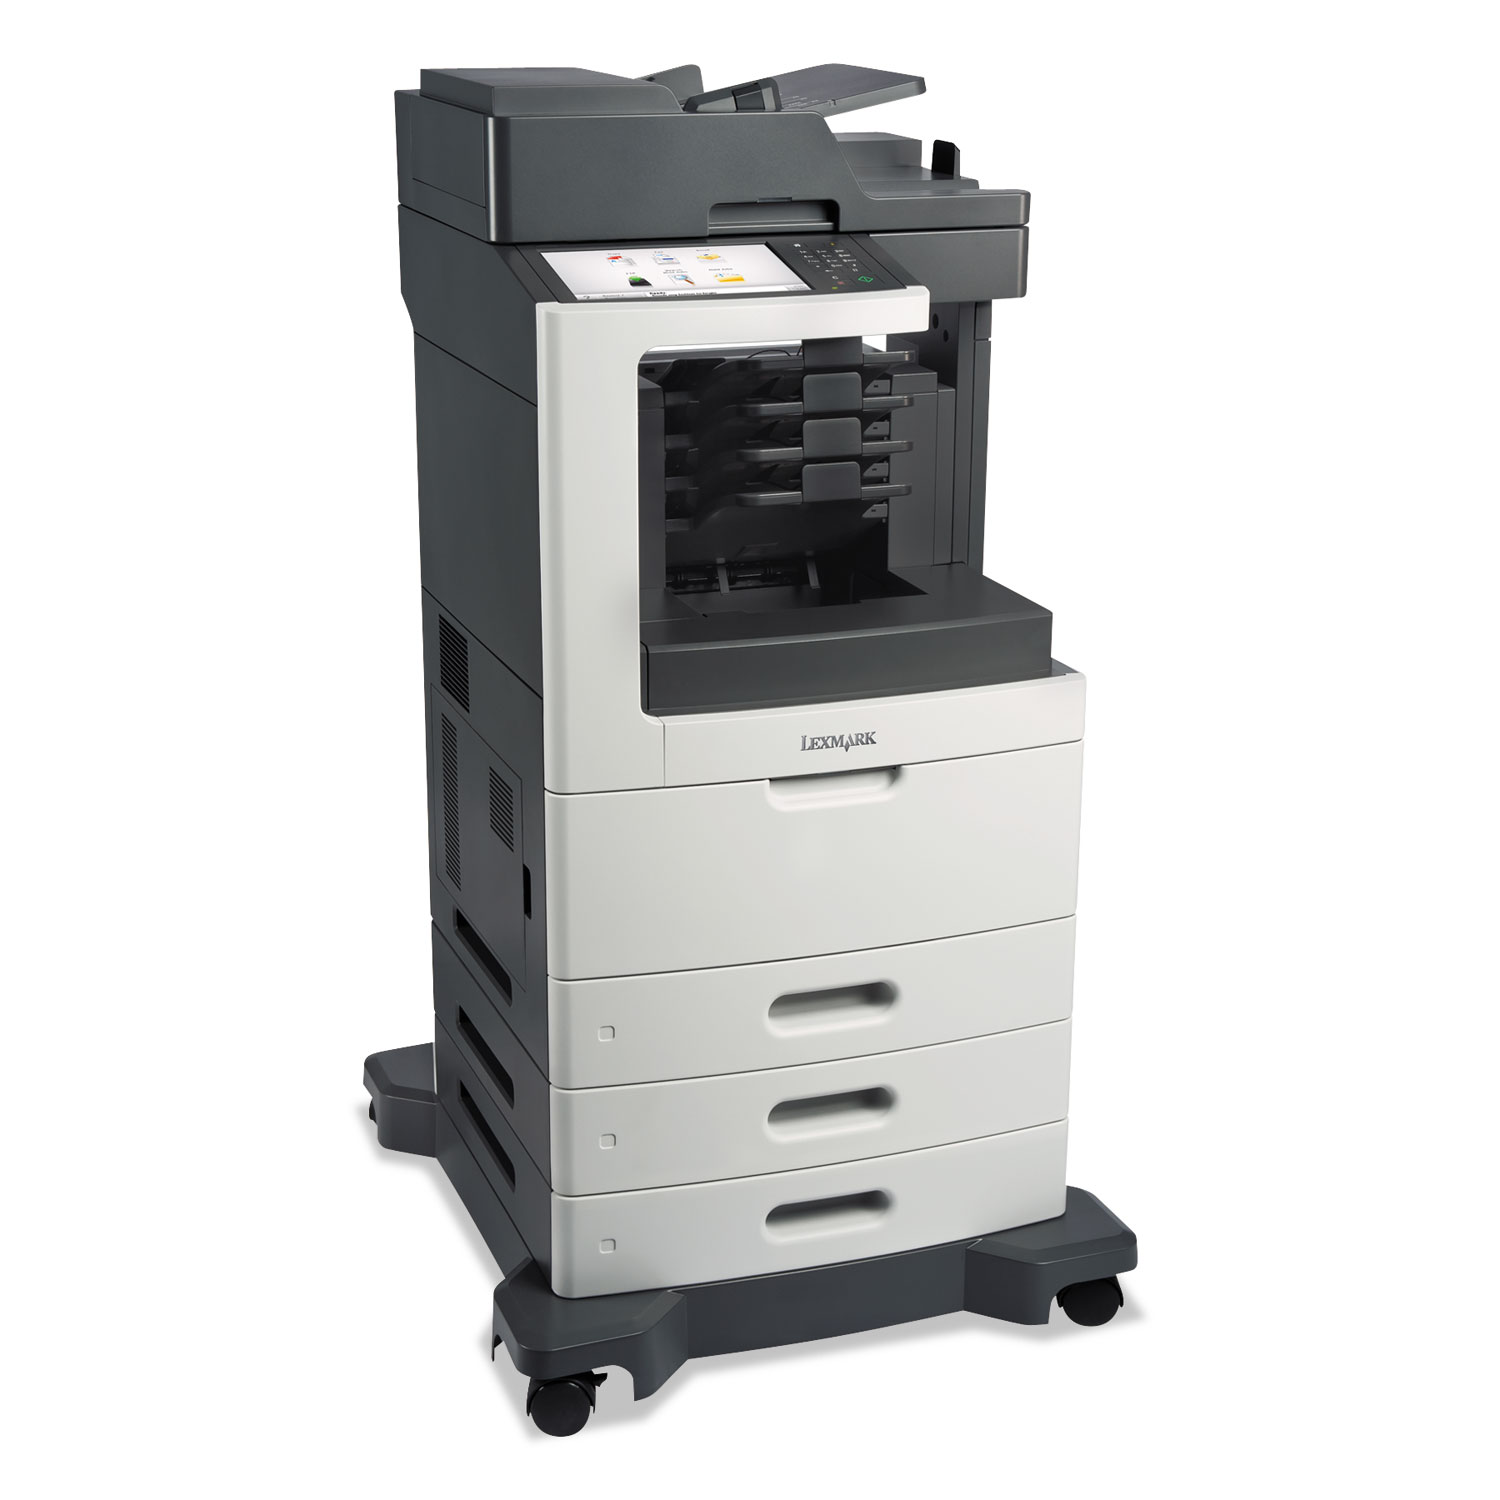 MX811dtme Multifunction Laser Printer, Copy/Fax/Print/Scan